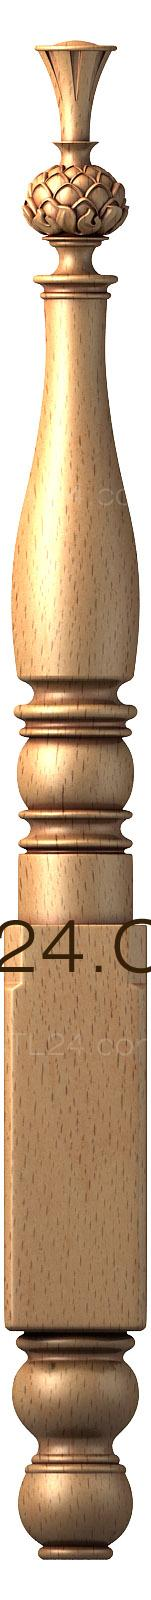 Pillar (ST_0189) - 3D model for CNC